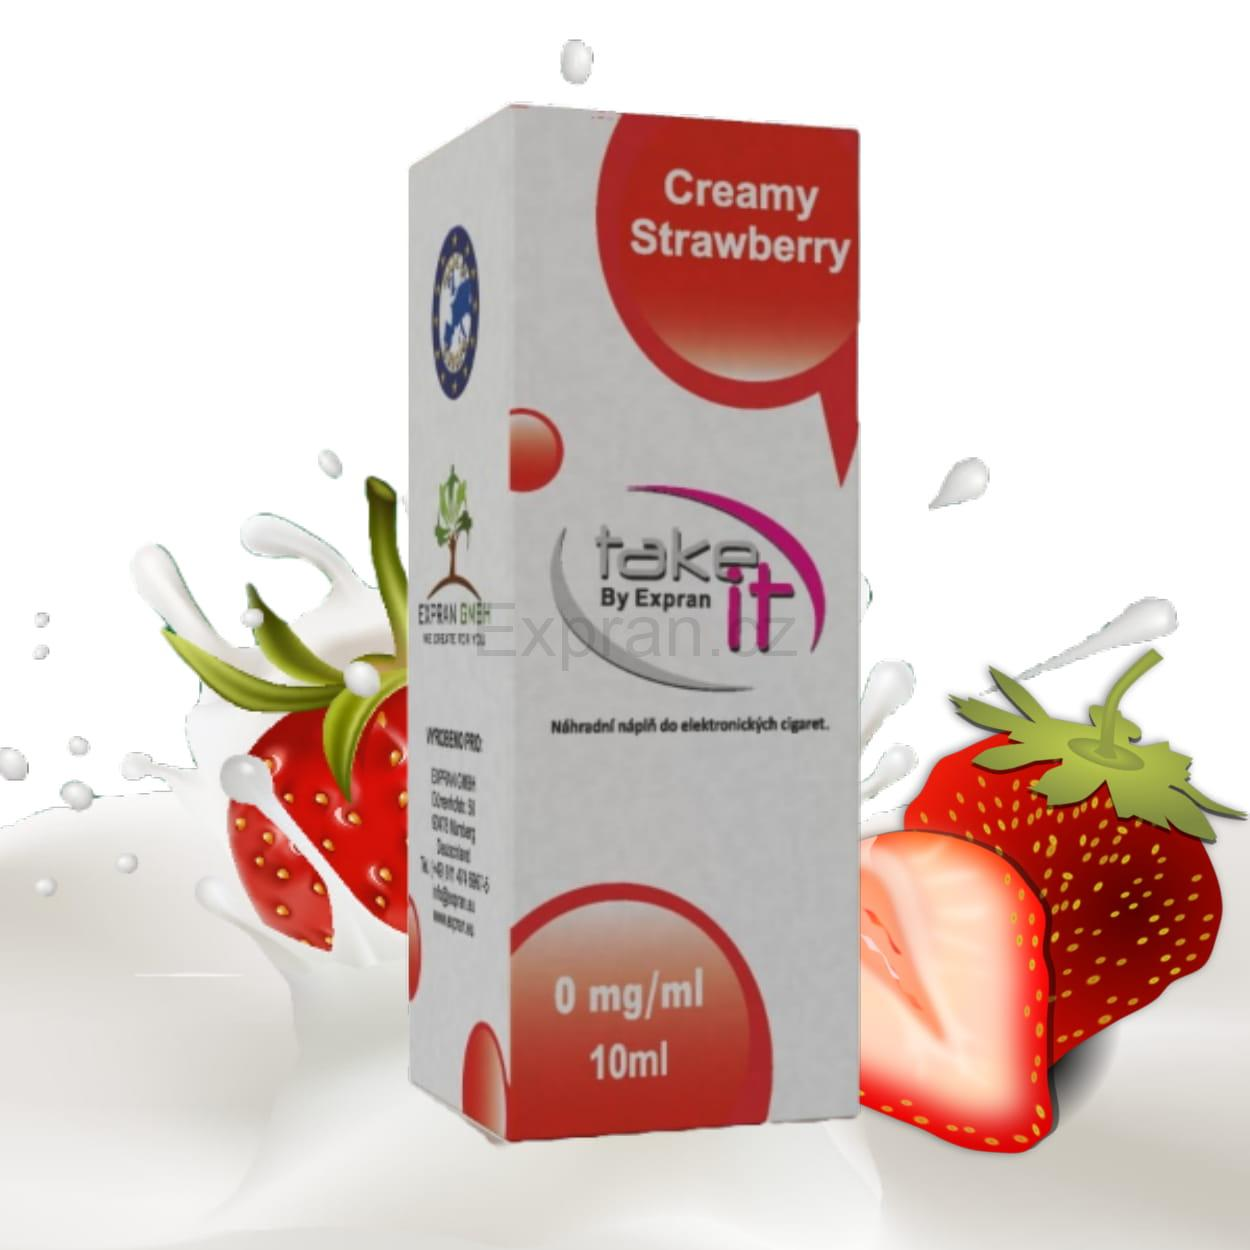 10 ml Take It - Strawberry Cream 6 mg/ml